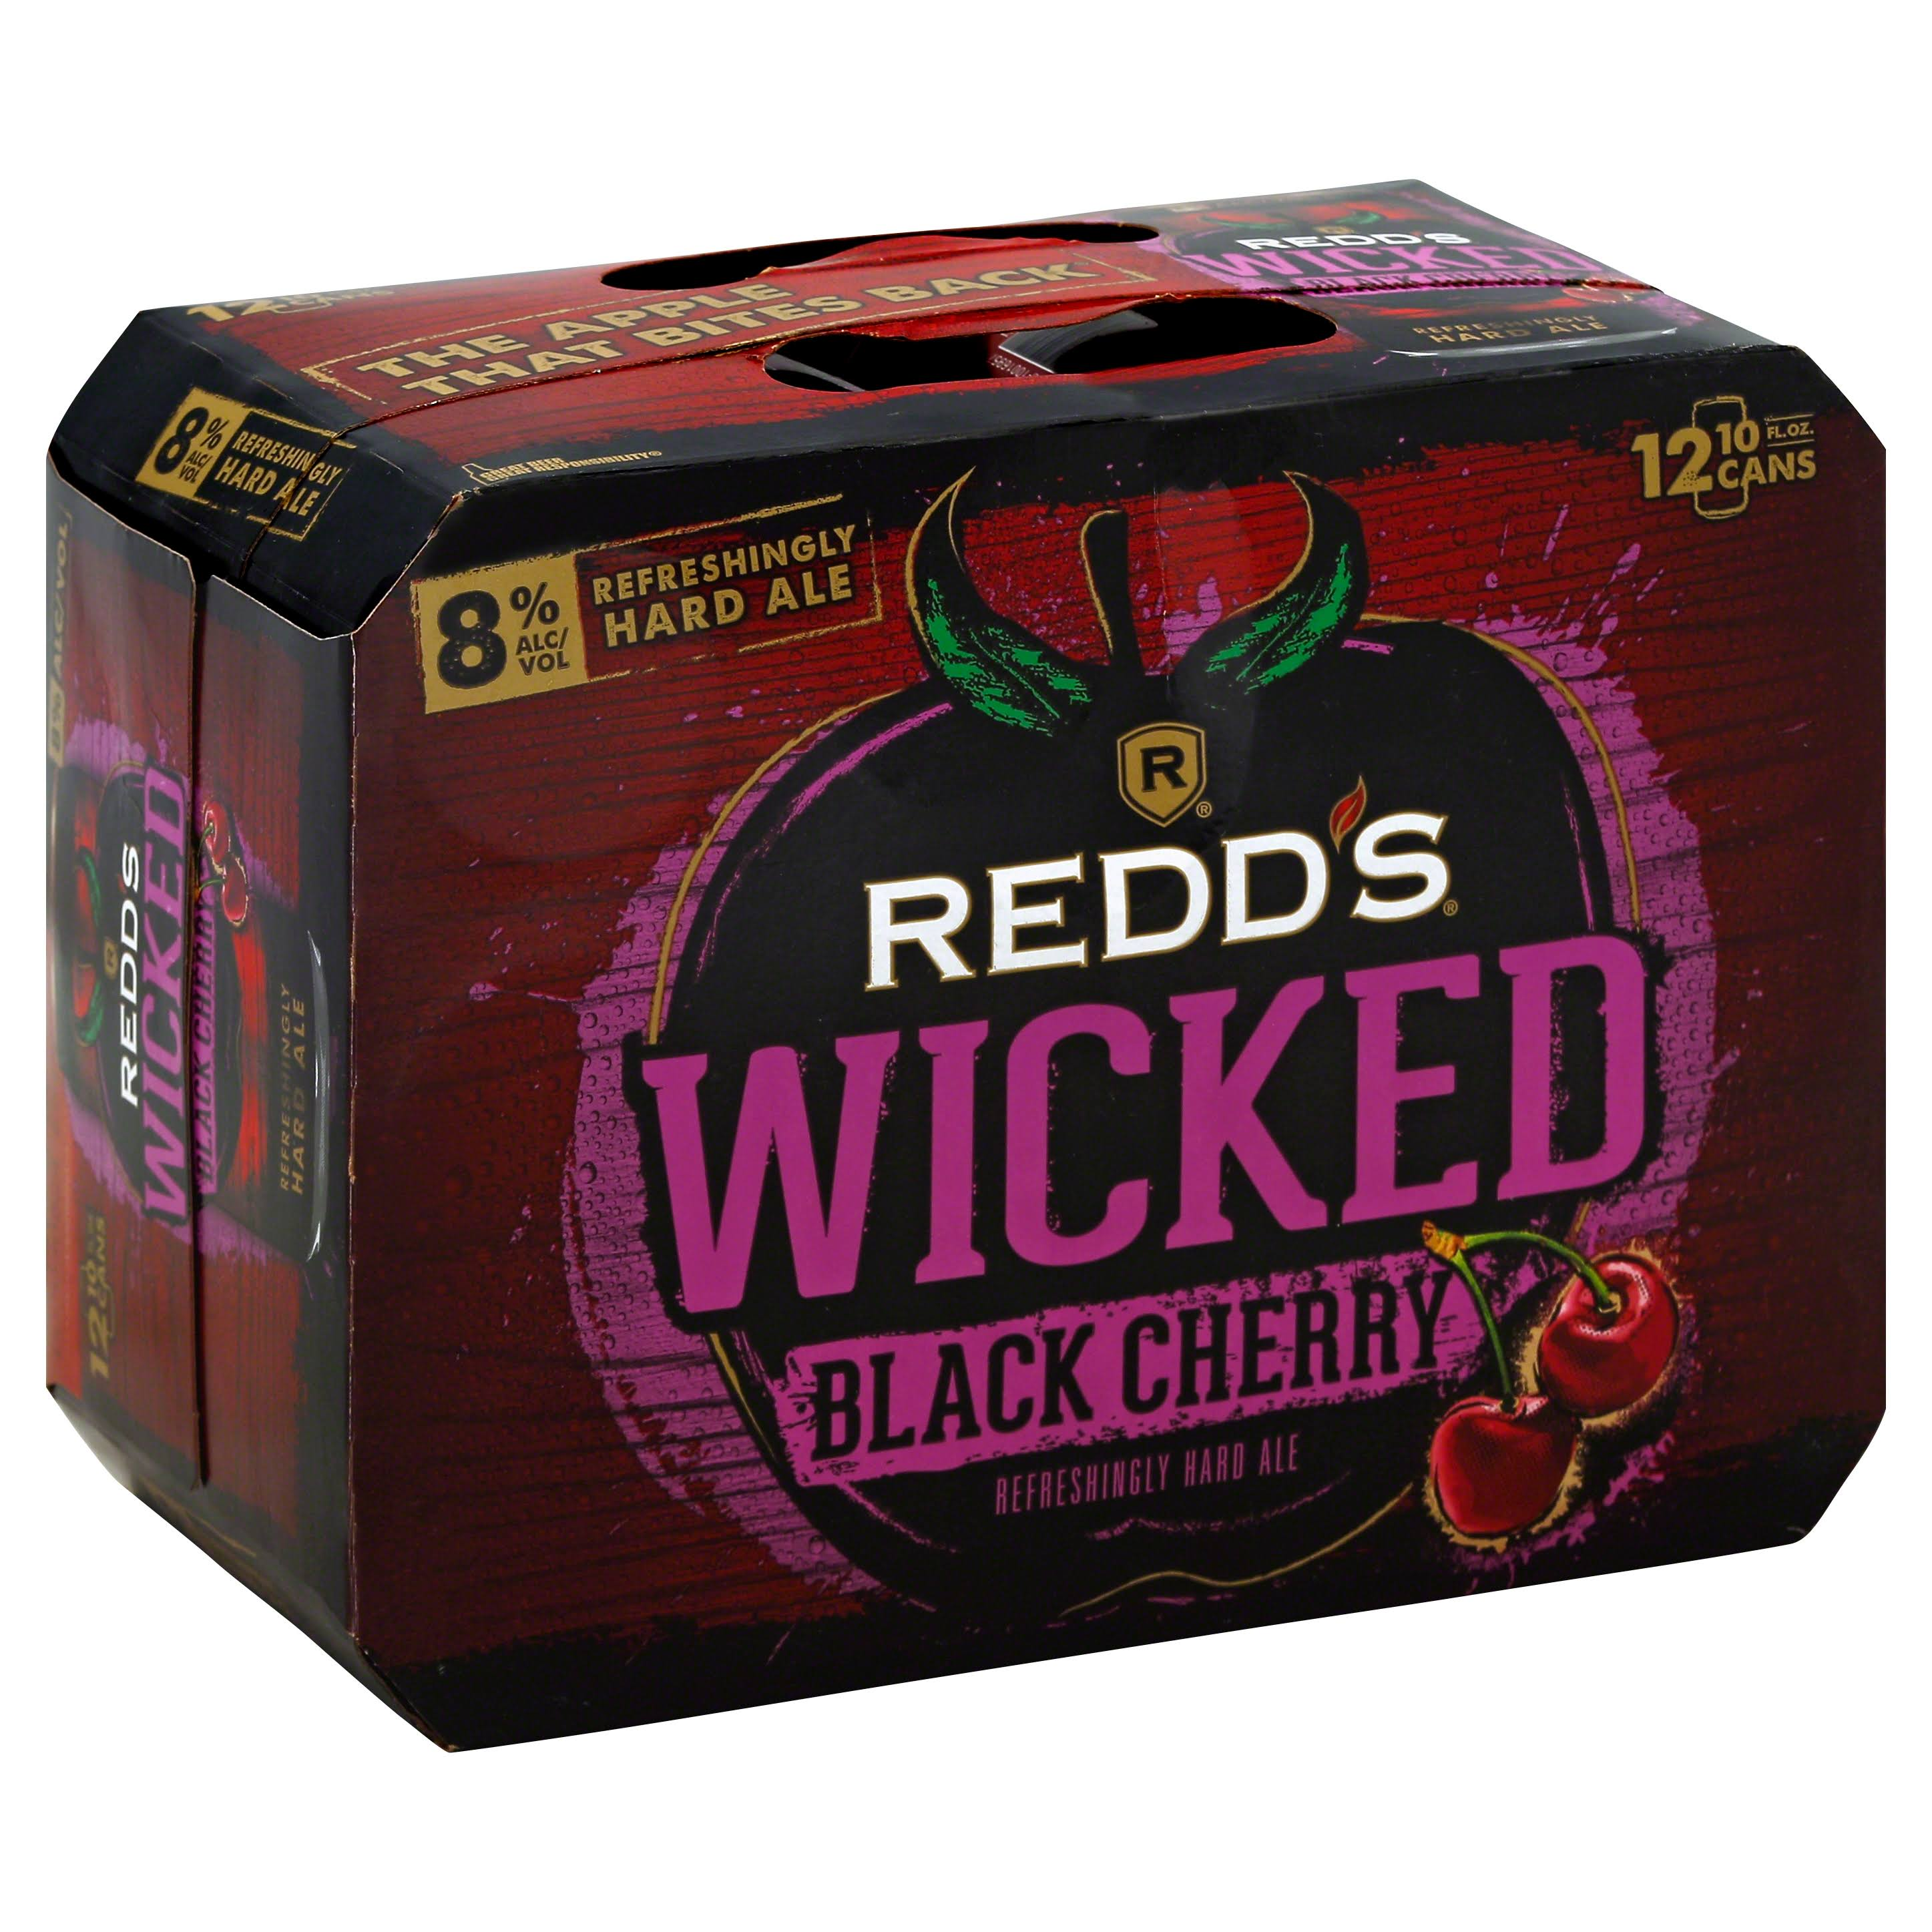 Redd's Wicked Black Cherry Hard Ale - 12 Cans